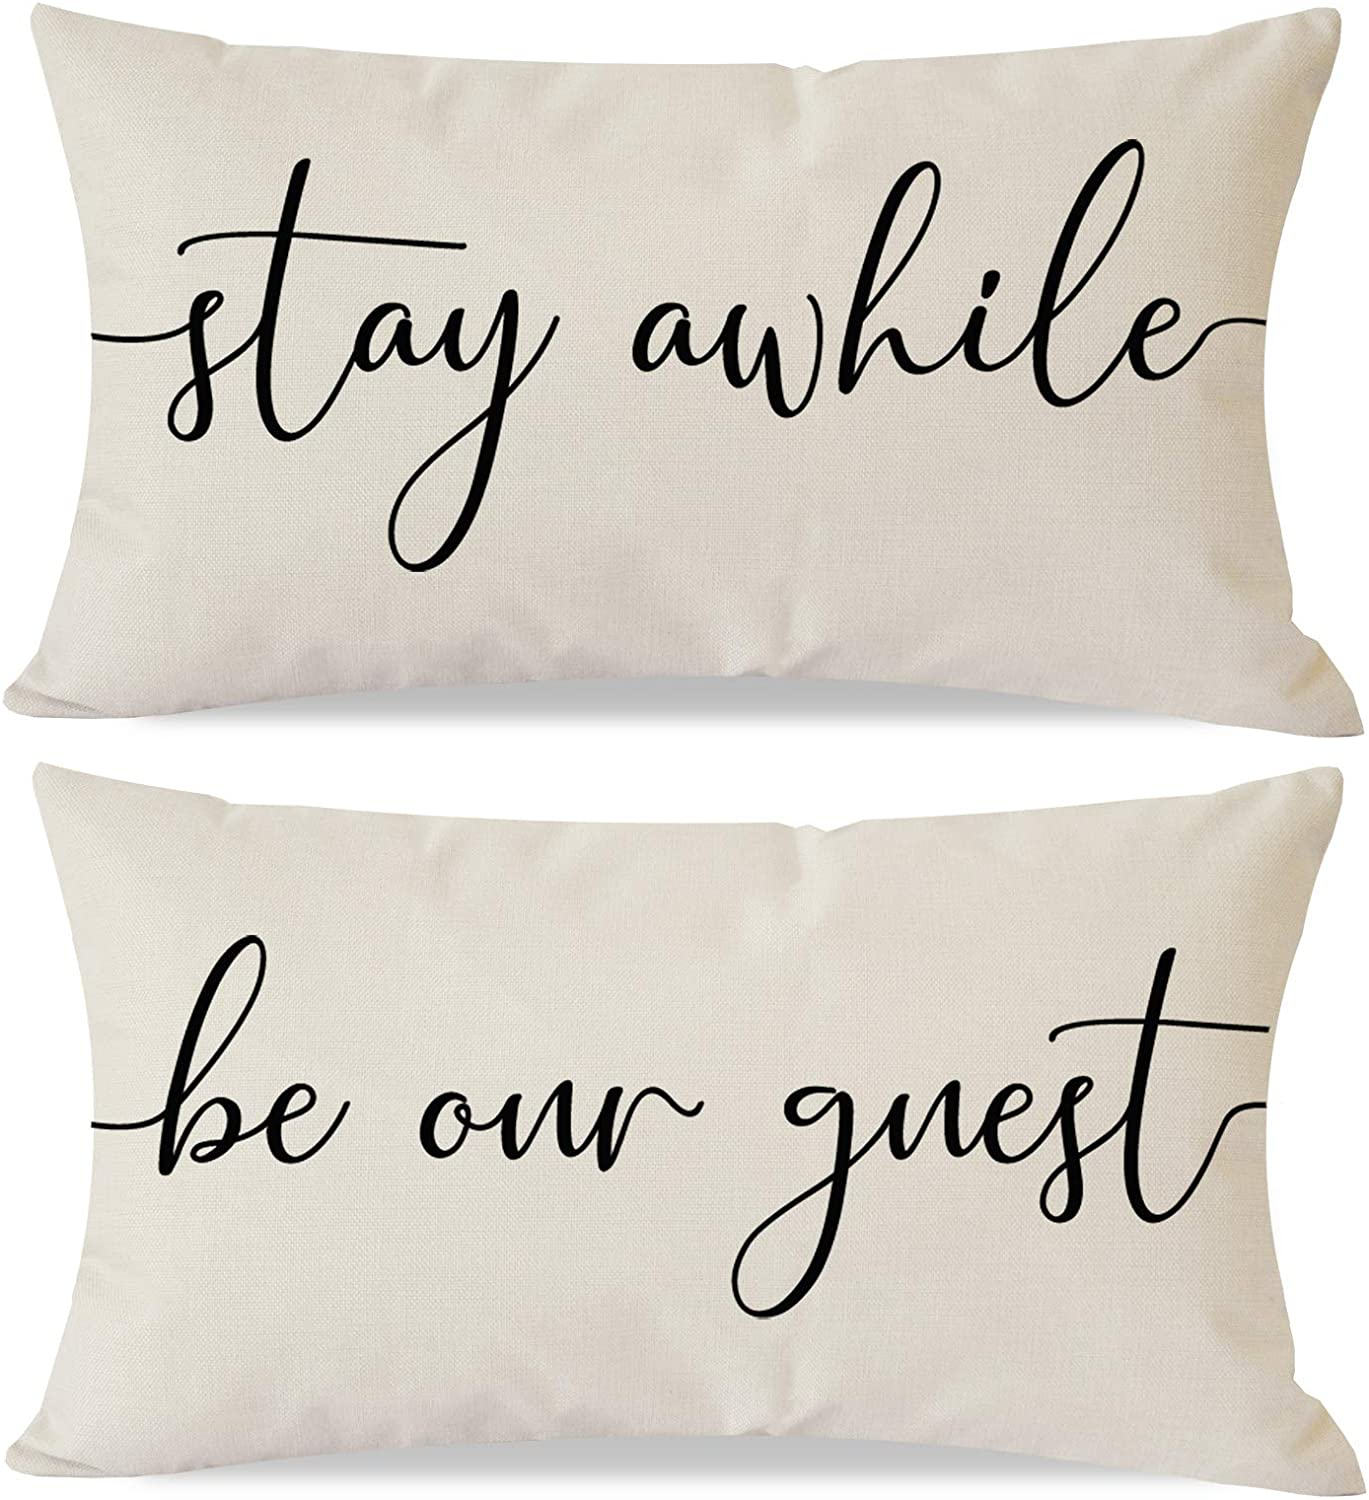 PANDICORN Set of 2 Farmhouse Pillow Covers 12x20 with Words Stay Awhile Be Our Guest for Home Décor, Lumbar Throw Pillow Cases for Guest Room Outdoor Porch Chair